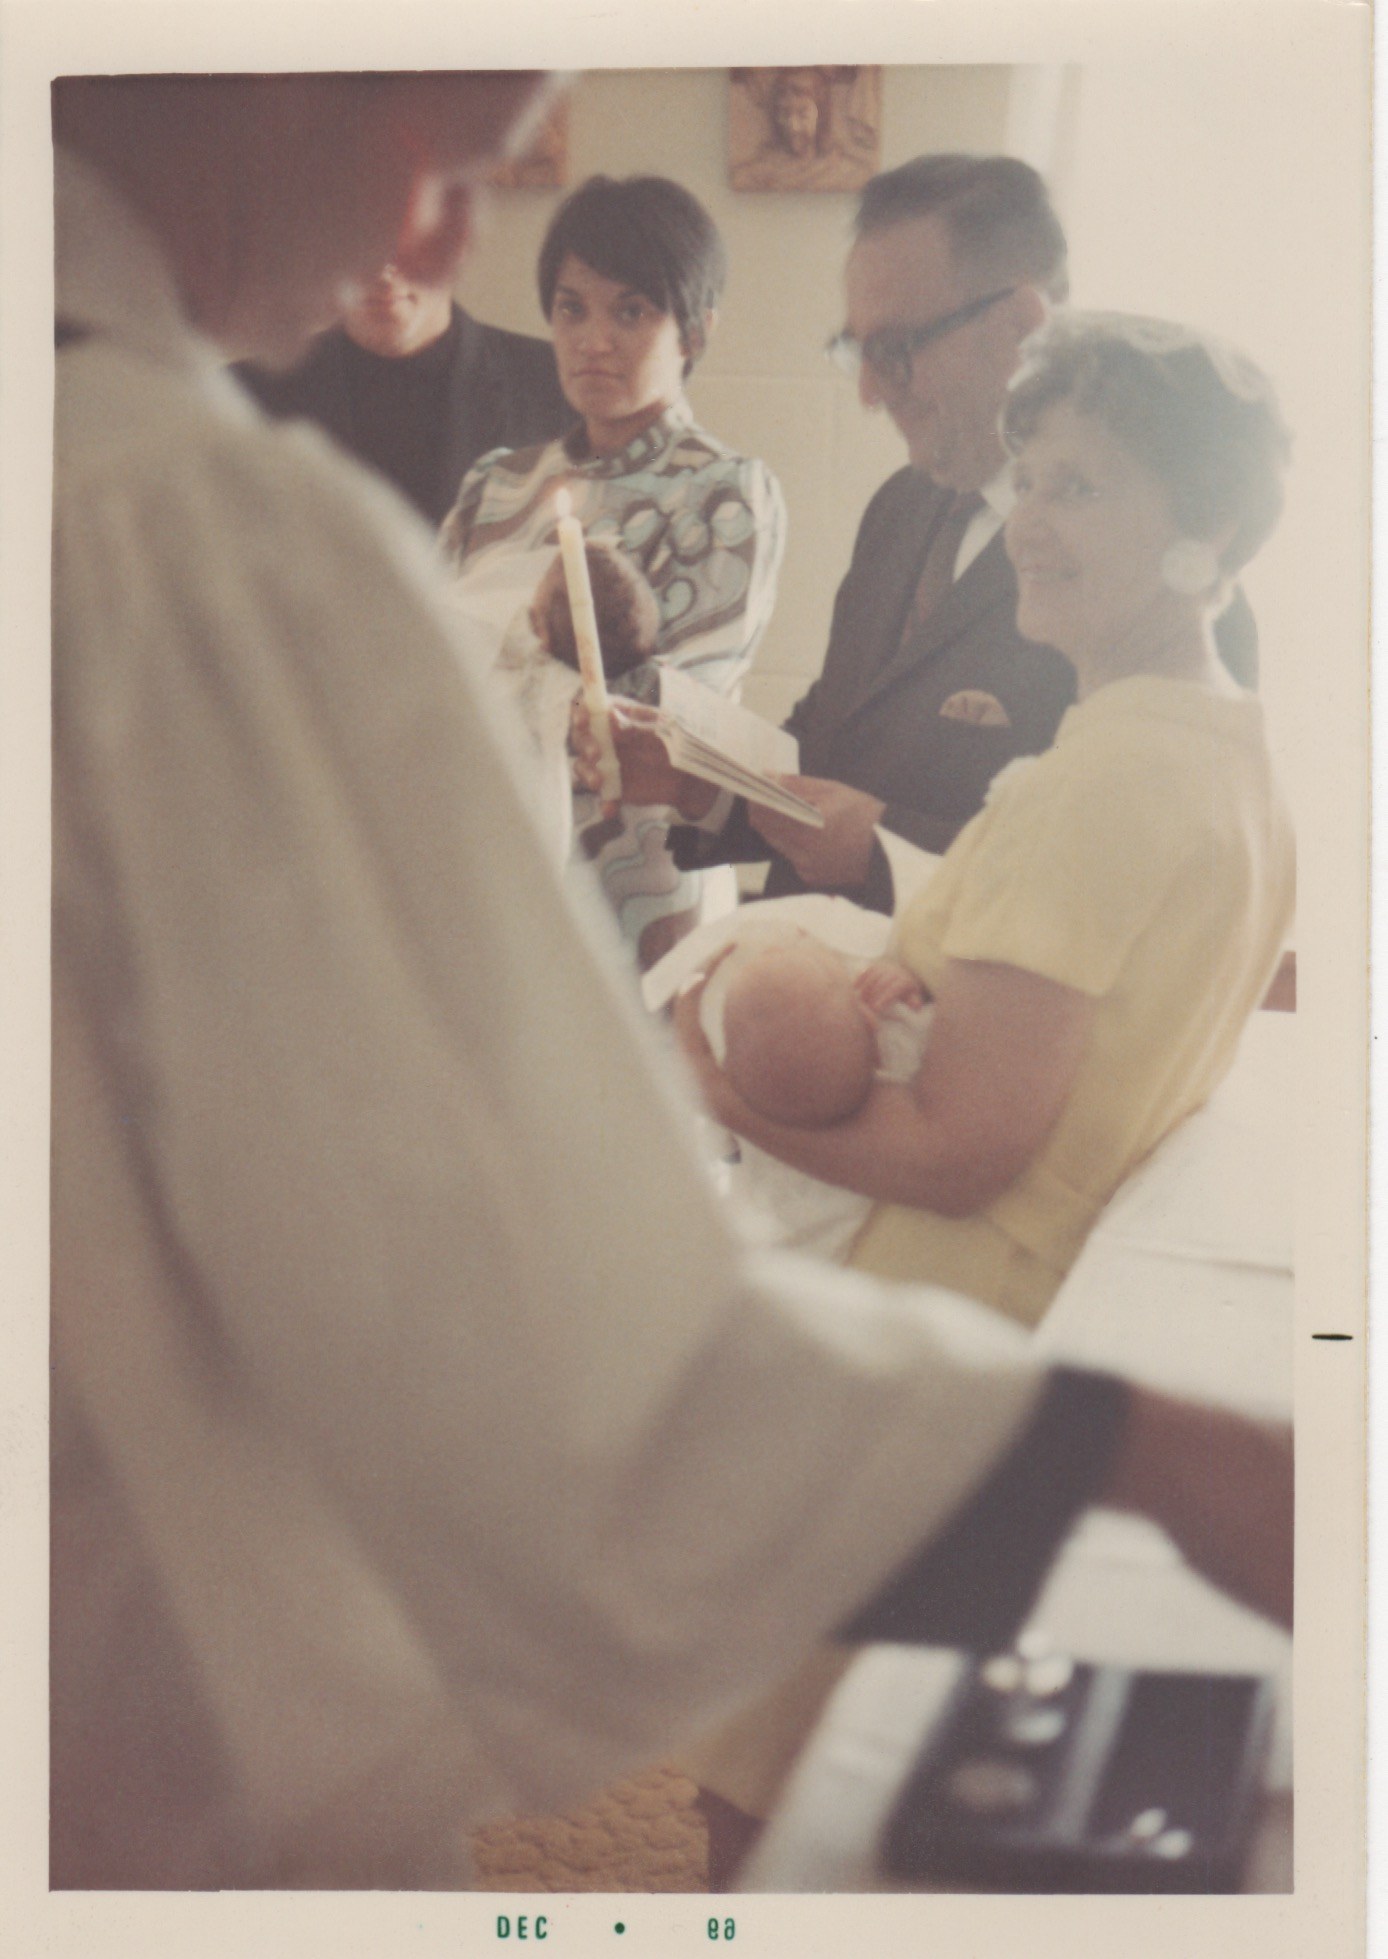 """July 20, 1969 - Christening Day"""